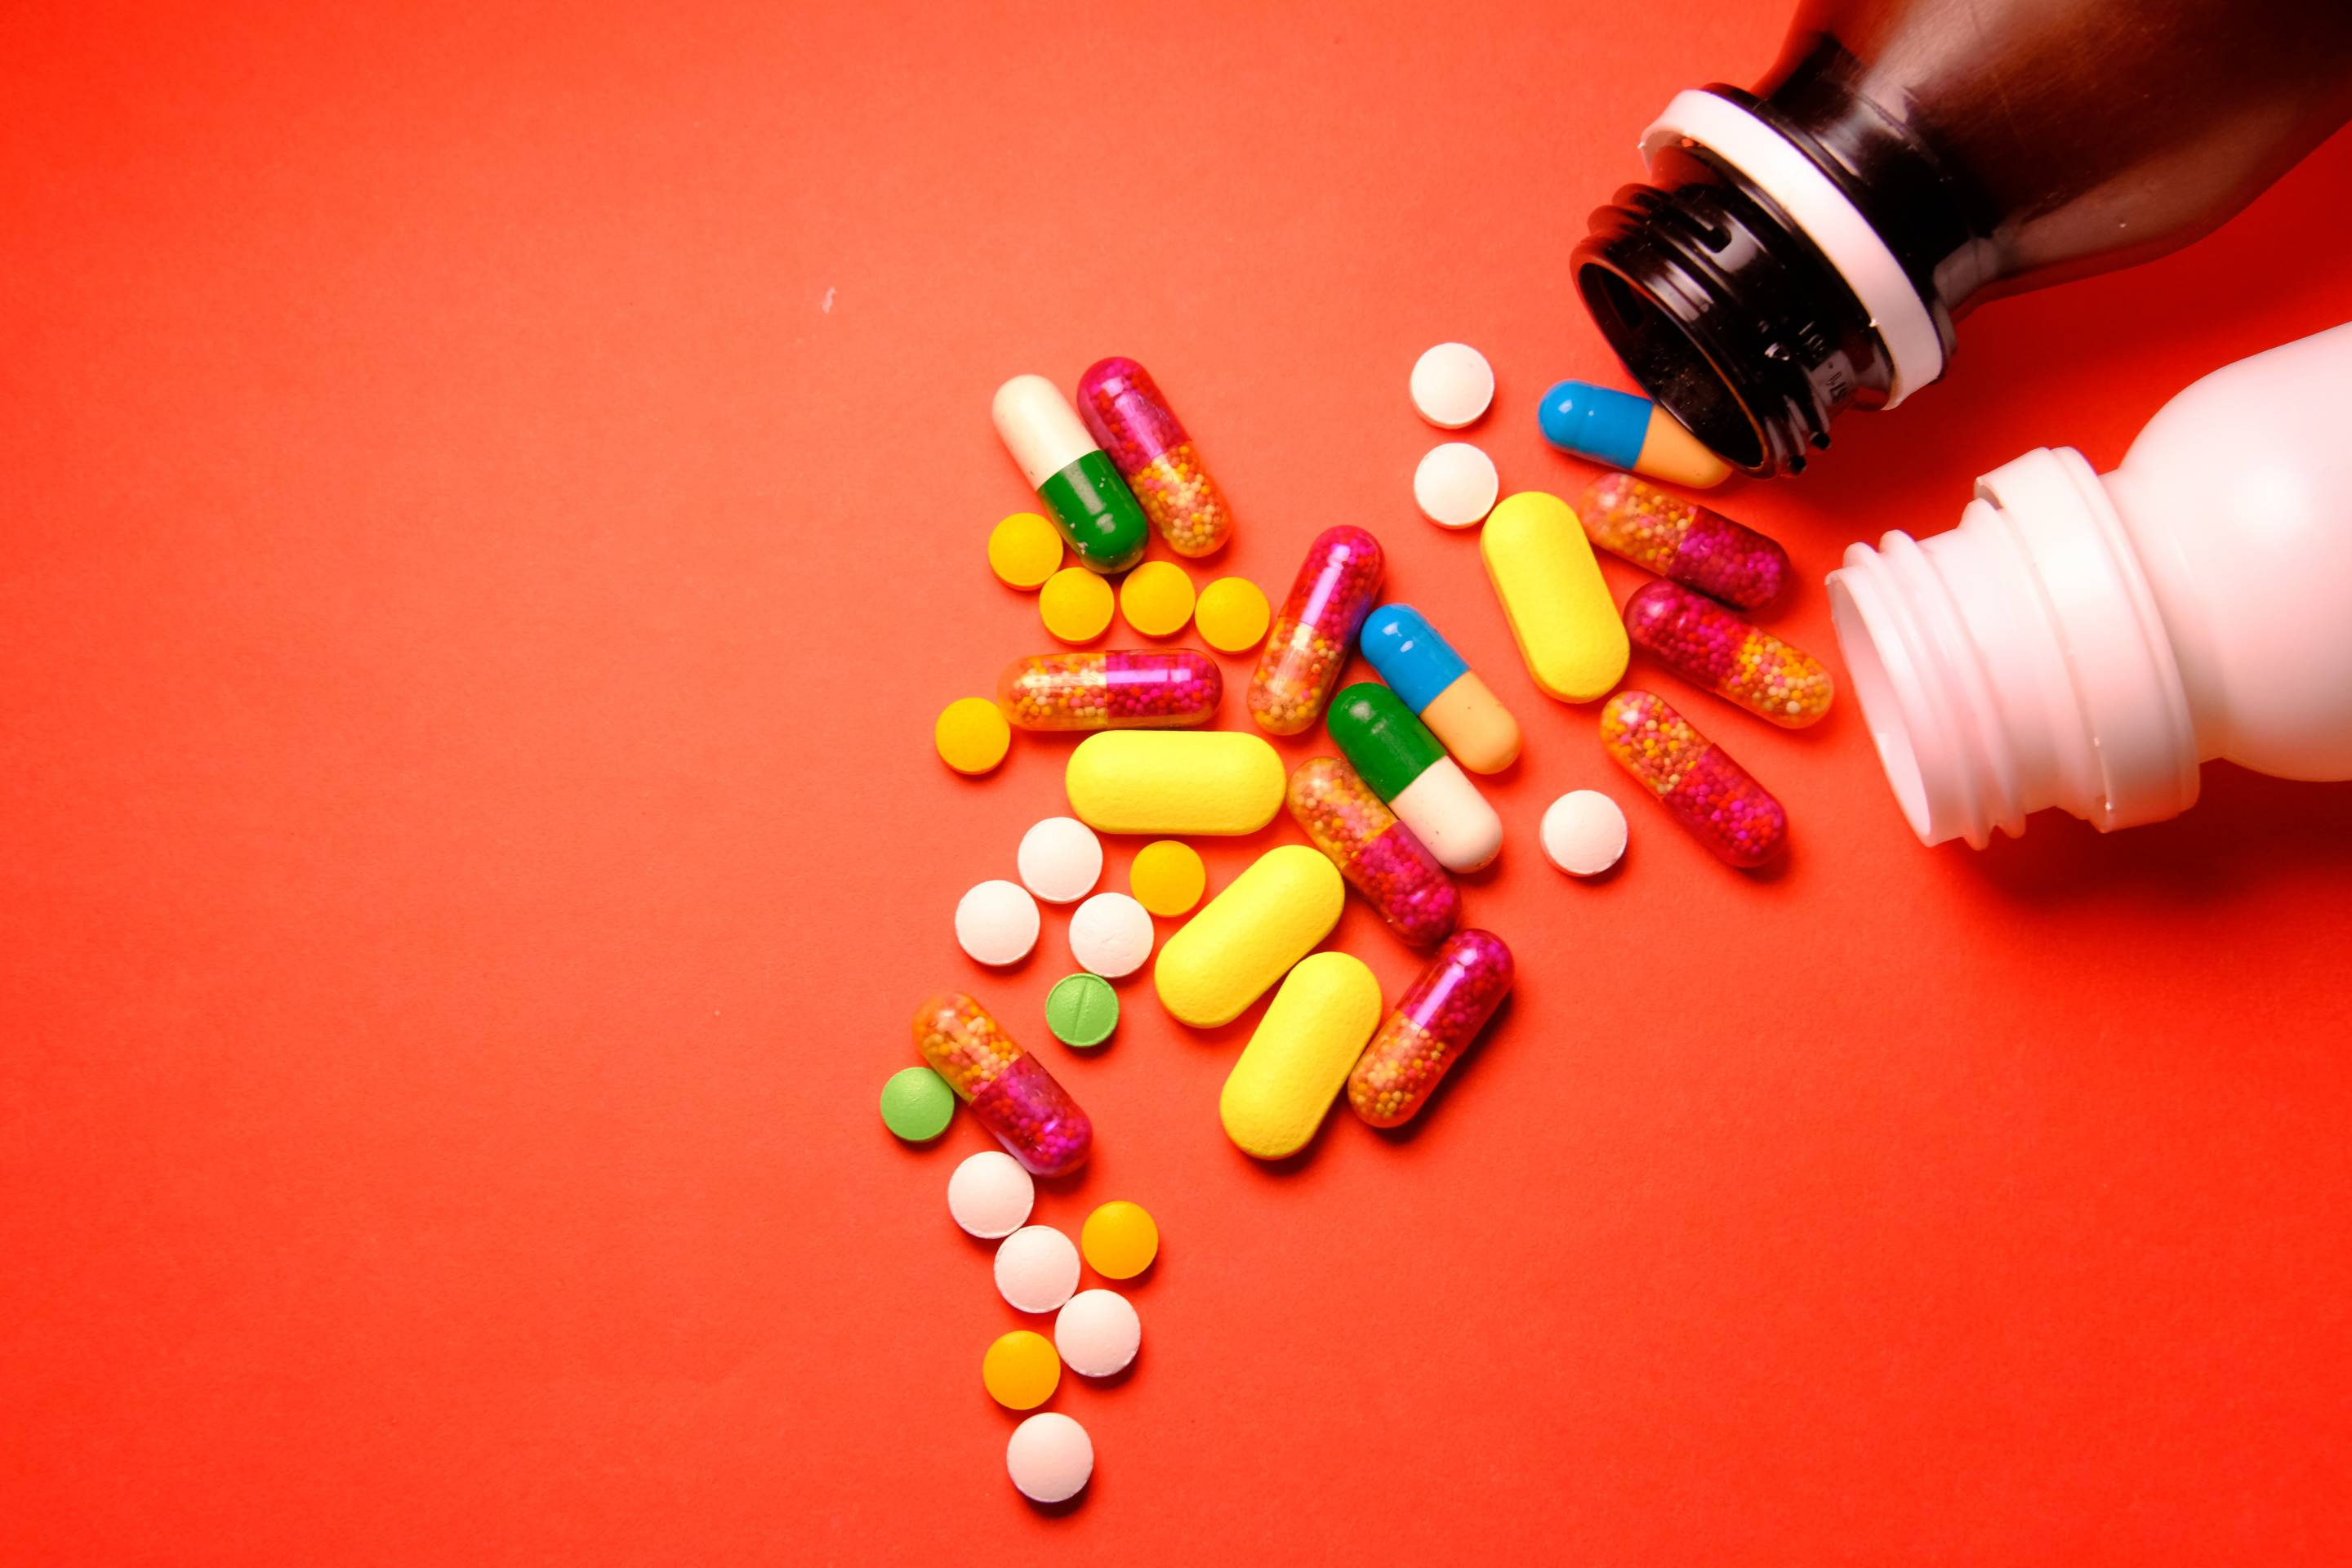 colourful pills spilled on red background.